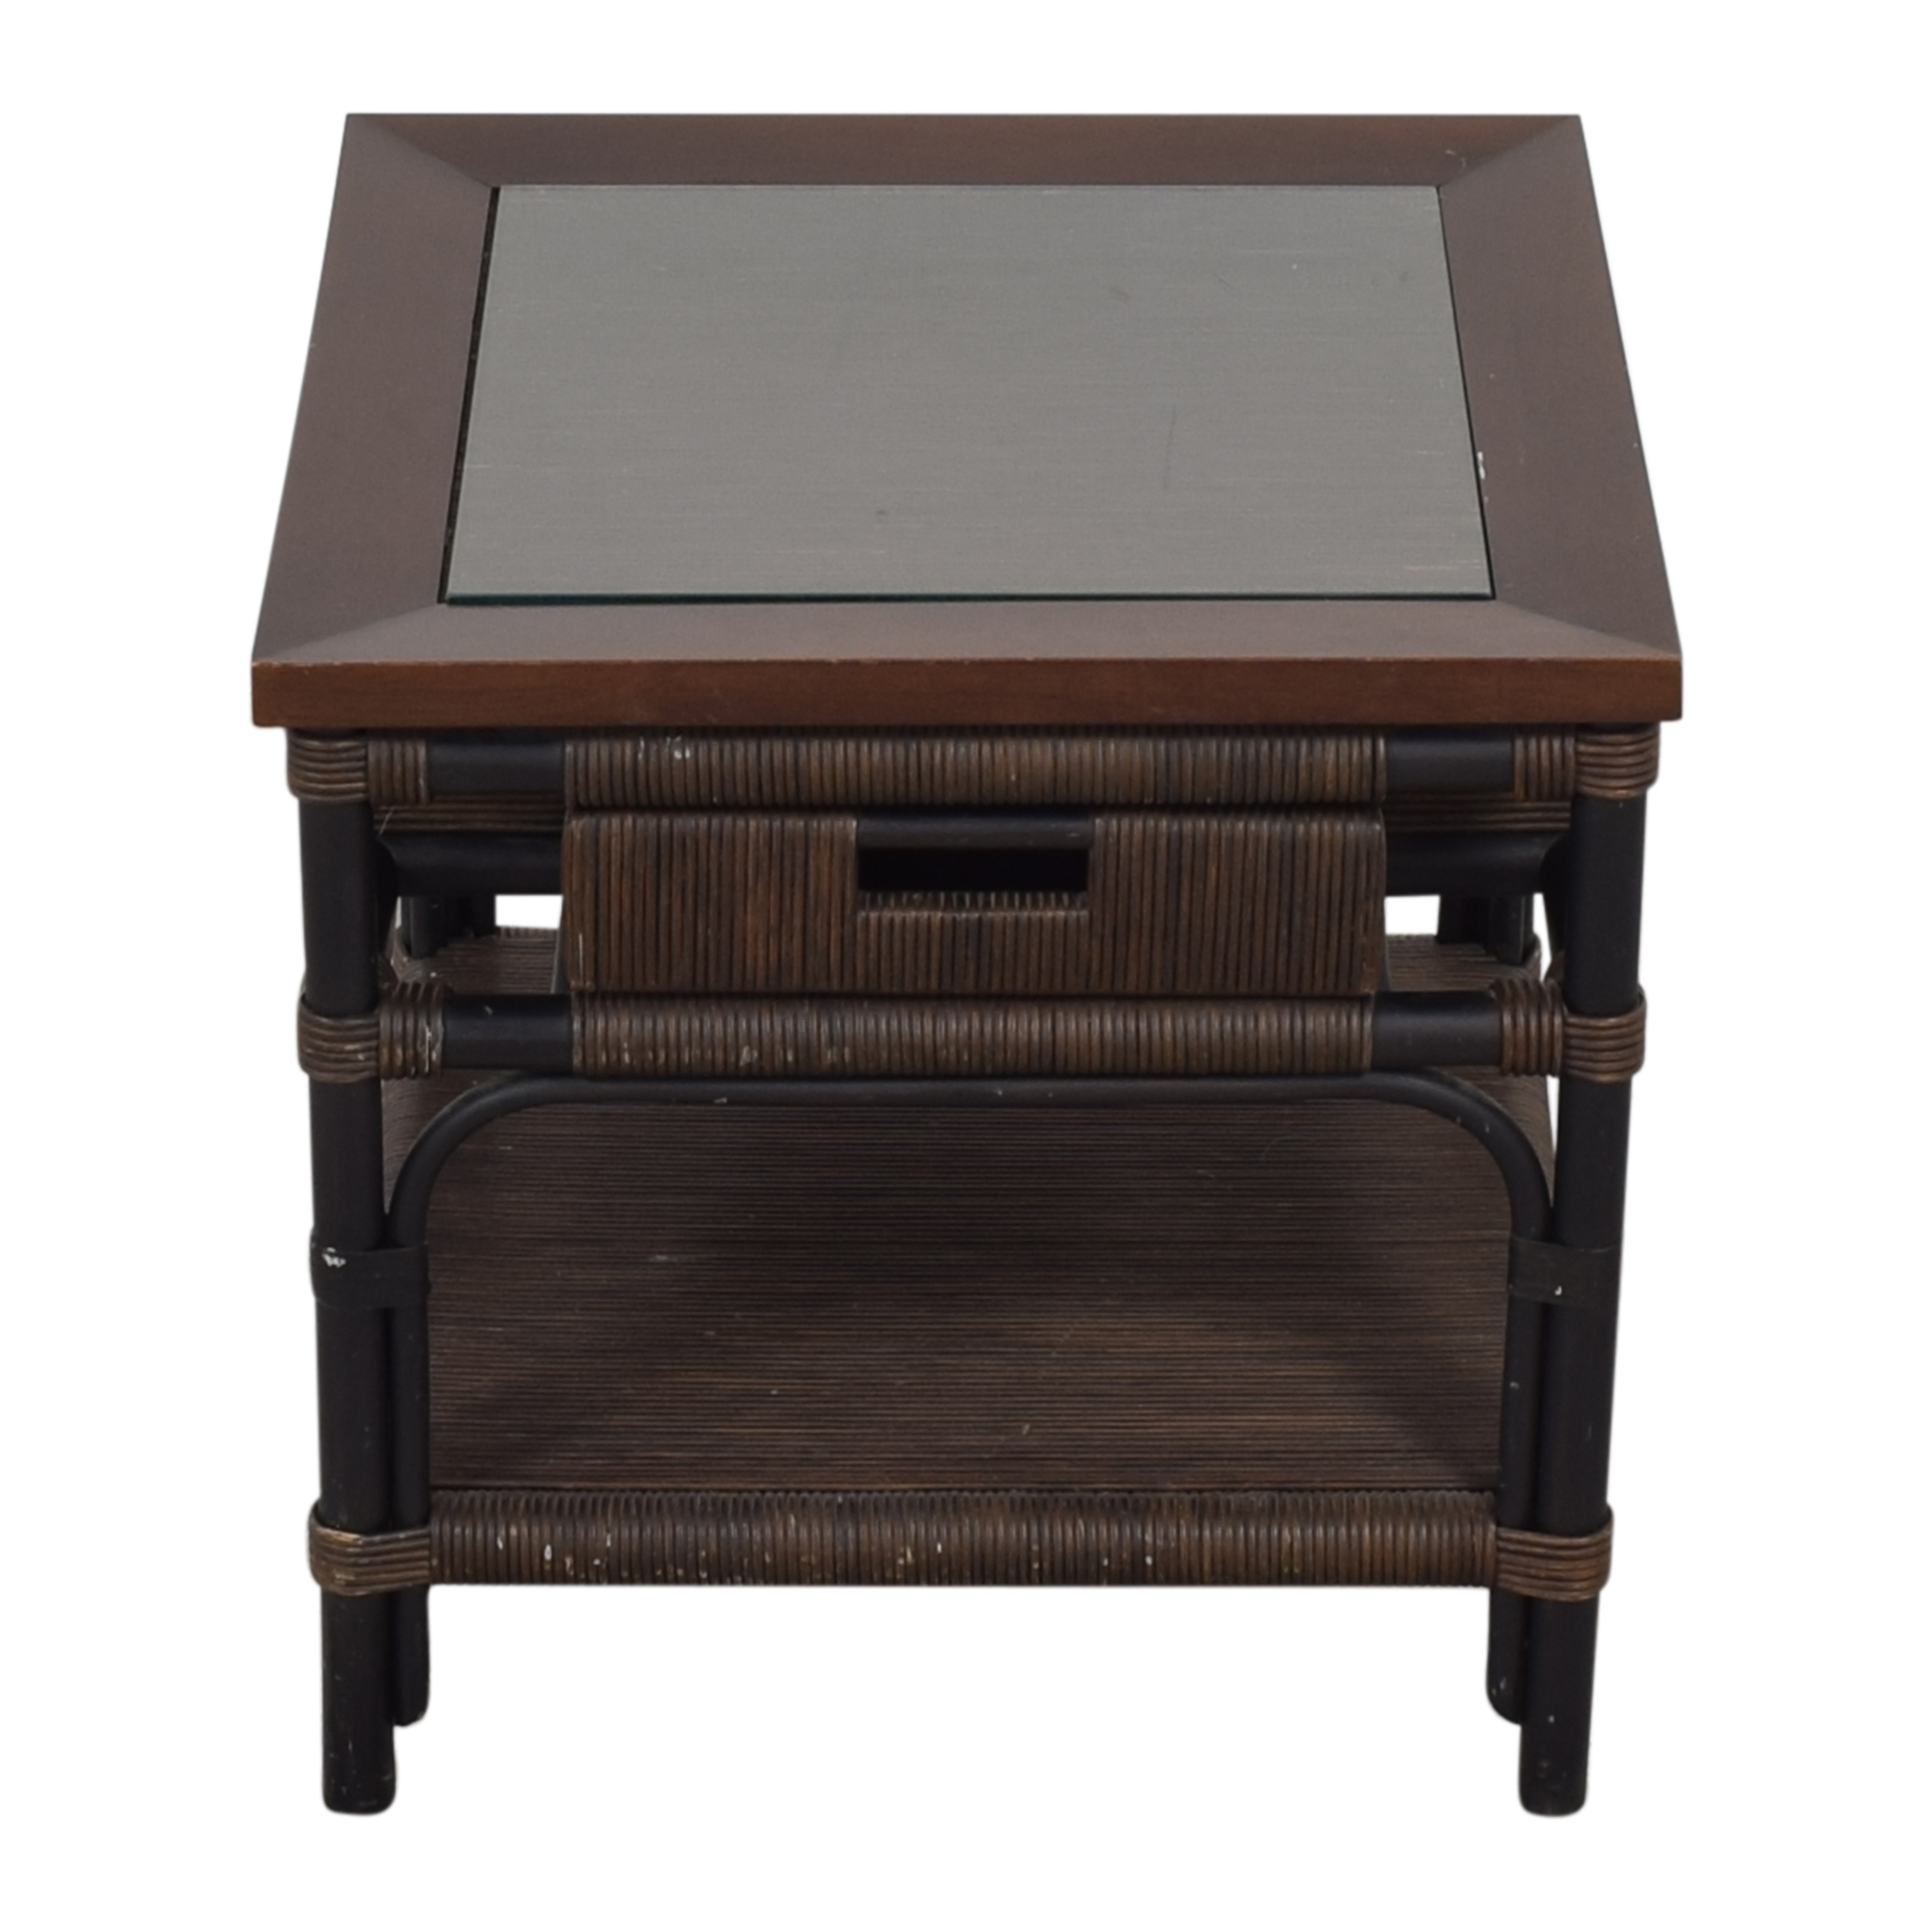 Donghia Donghia Modern Bamboo and Reed Table dimensions